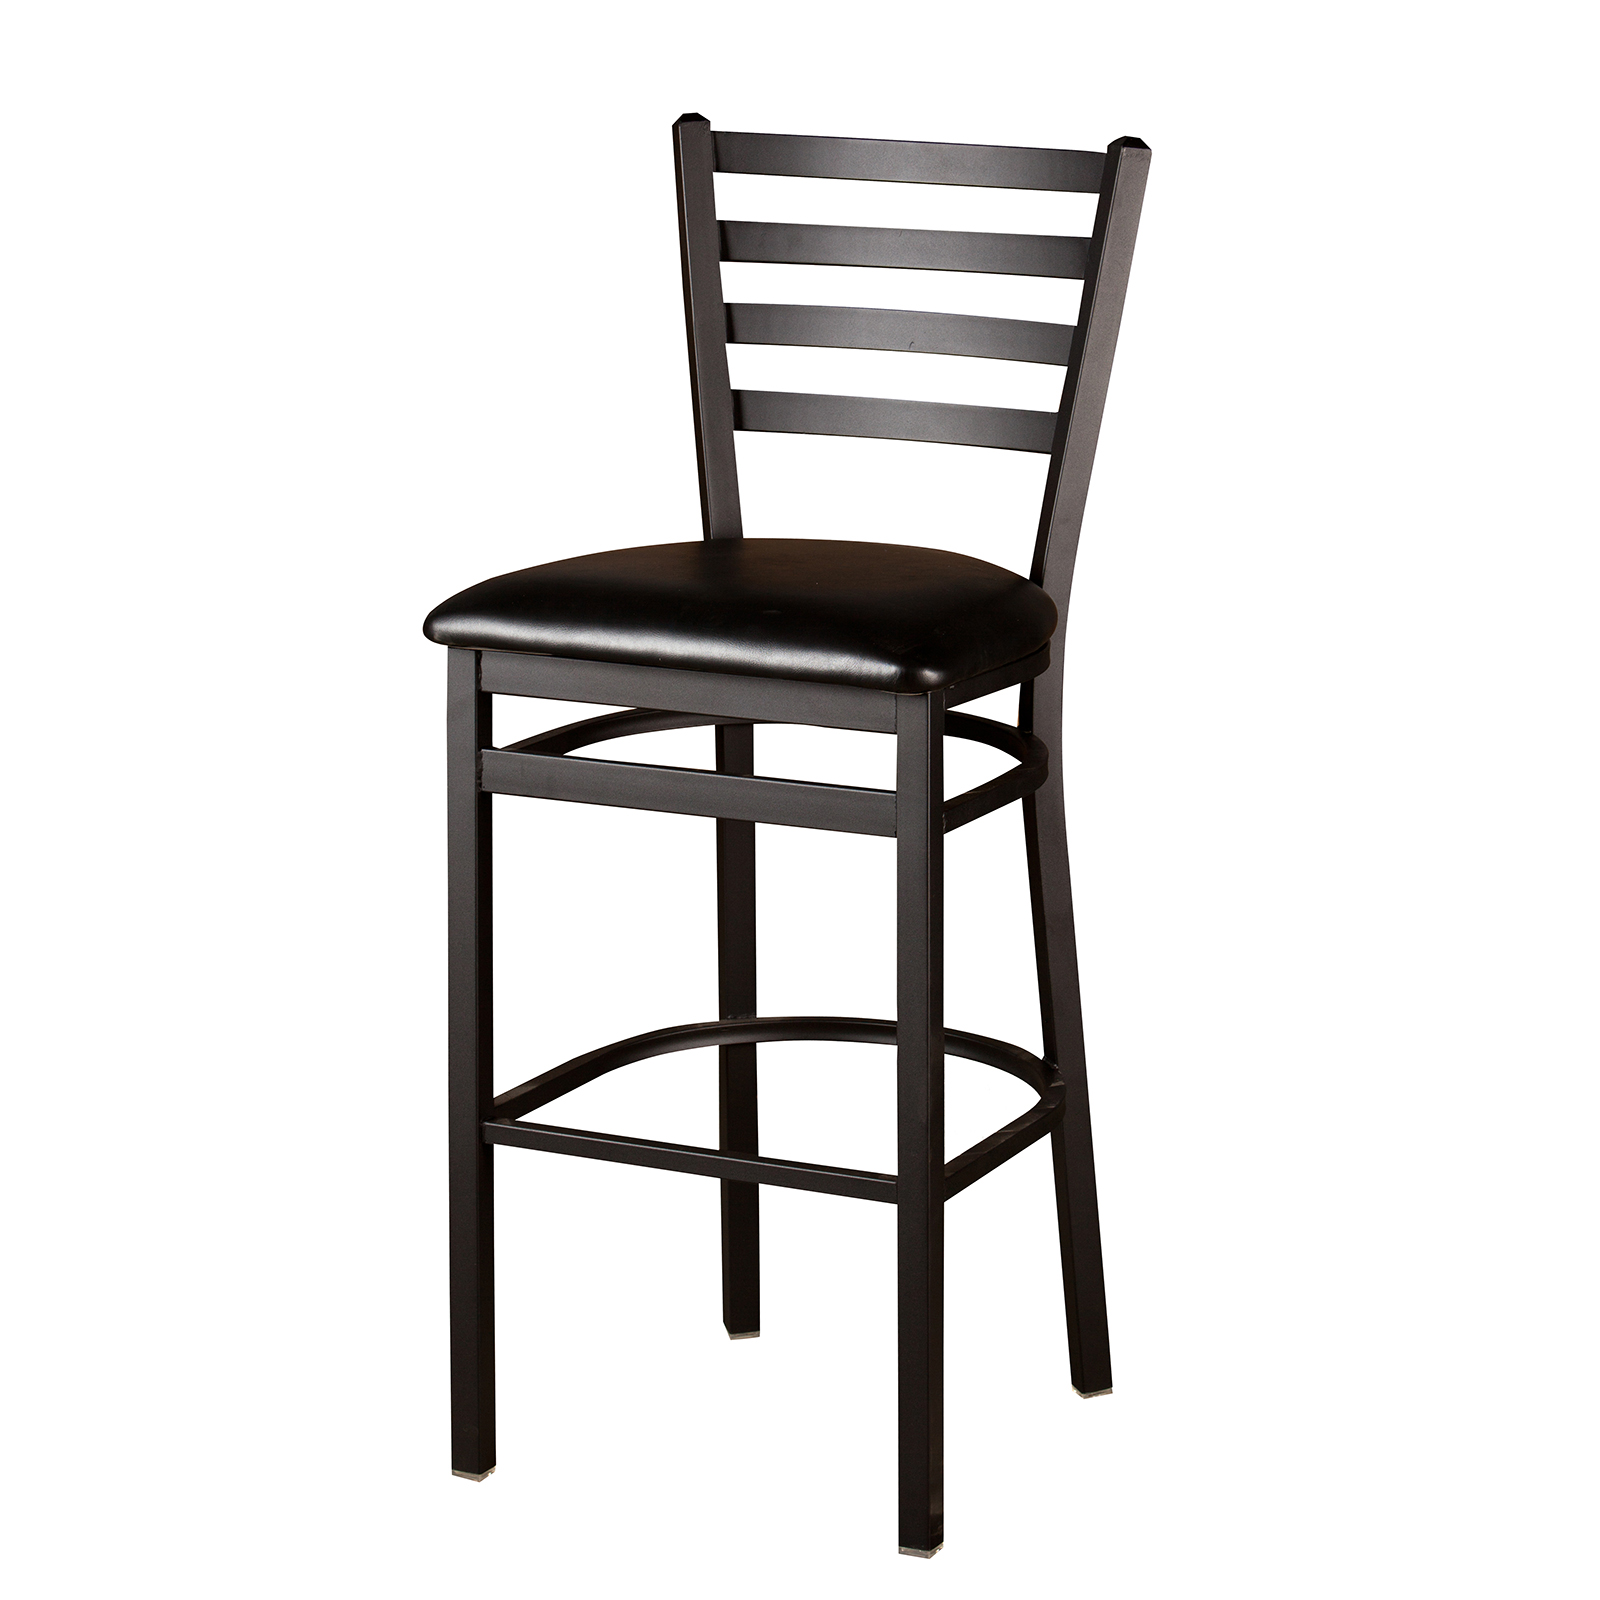 Oak Street SL3301 bar stool, indoor